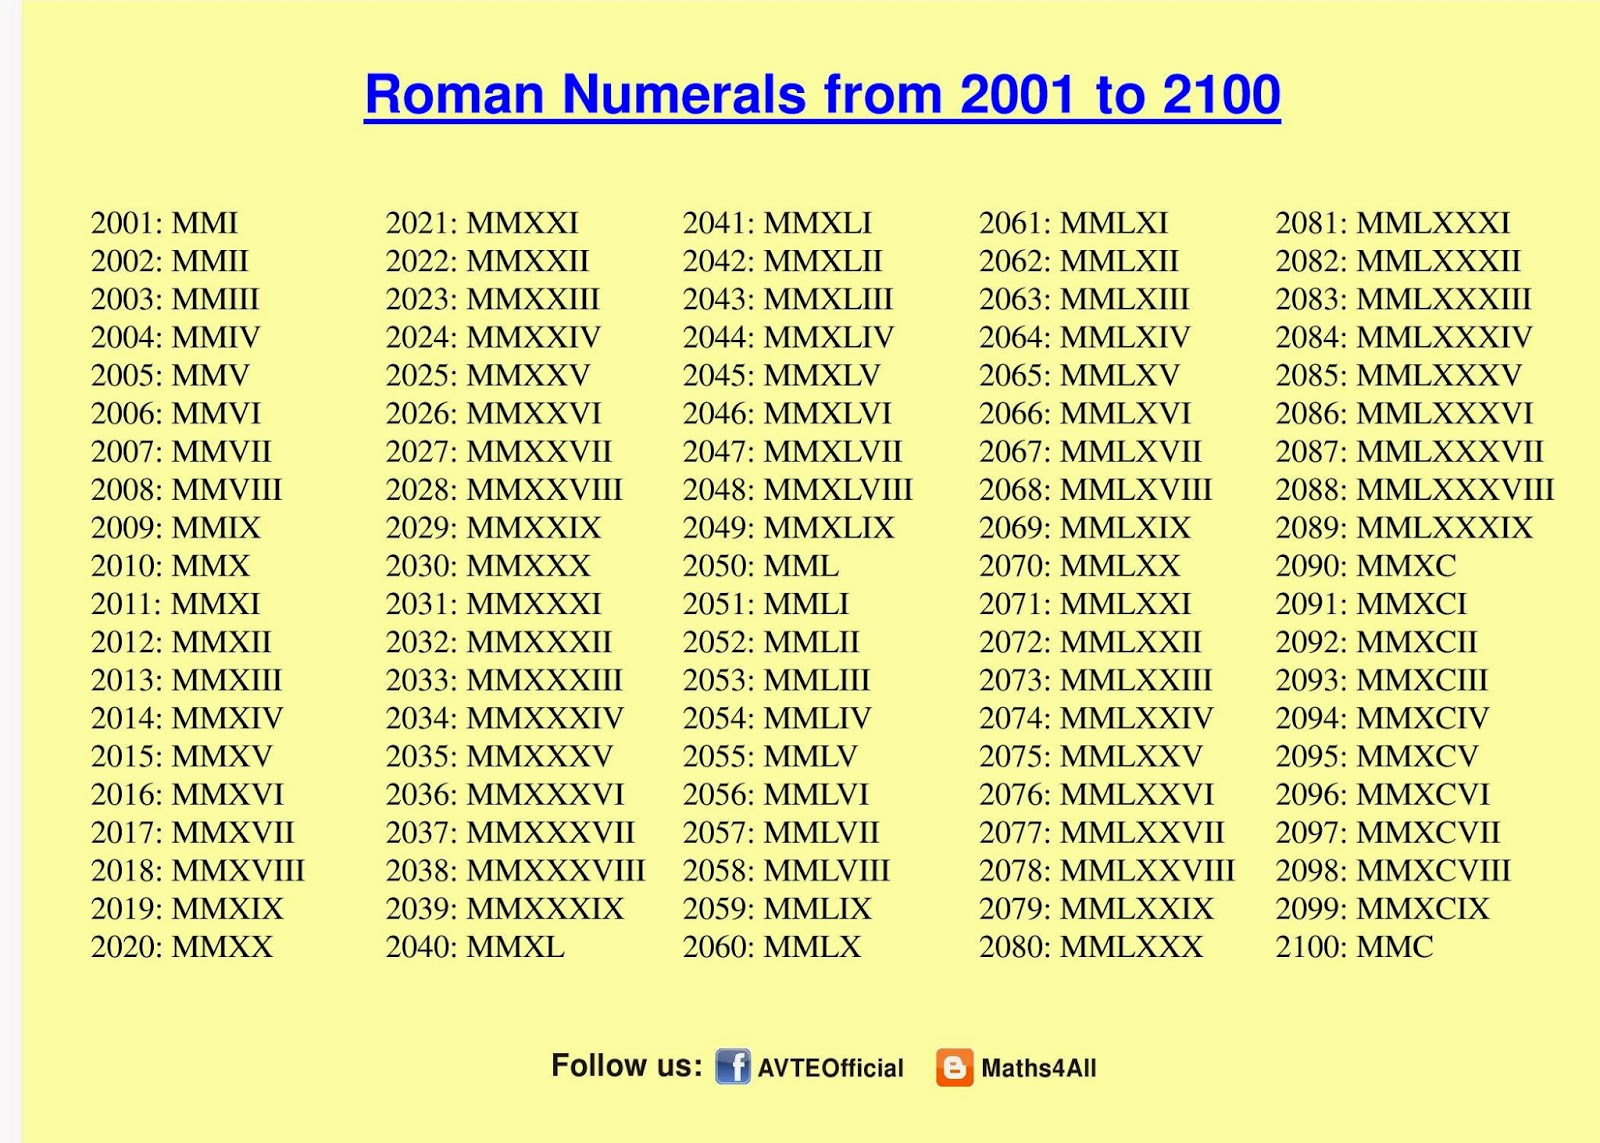 Worksheet Roman Numero maths4all roman numeral 2001 to 2100 numerals 2100